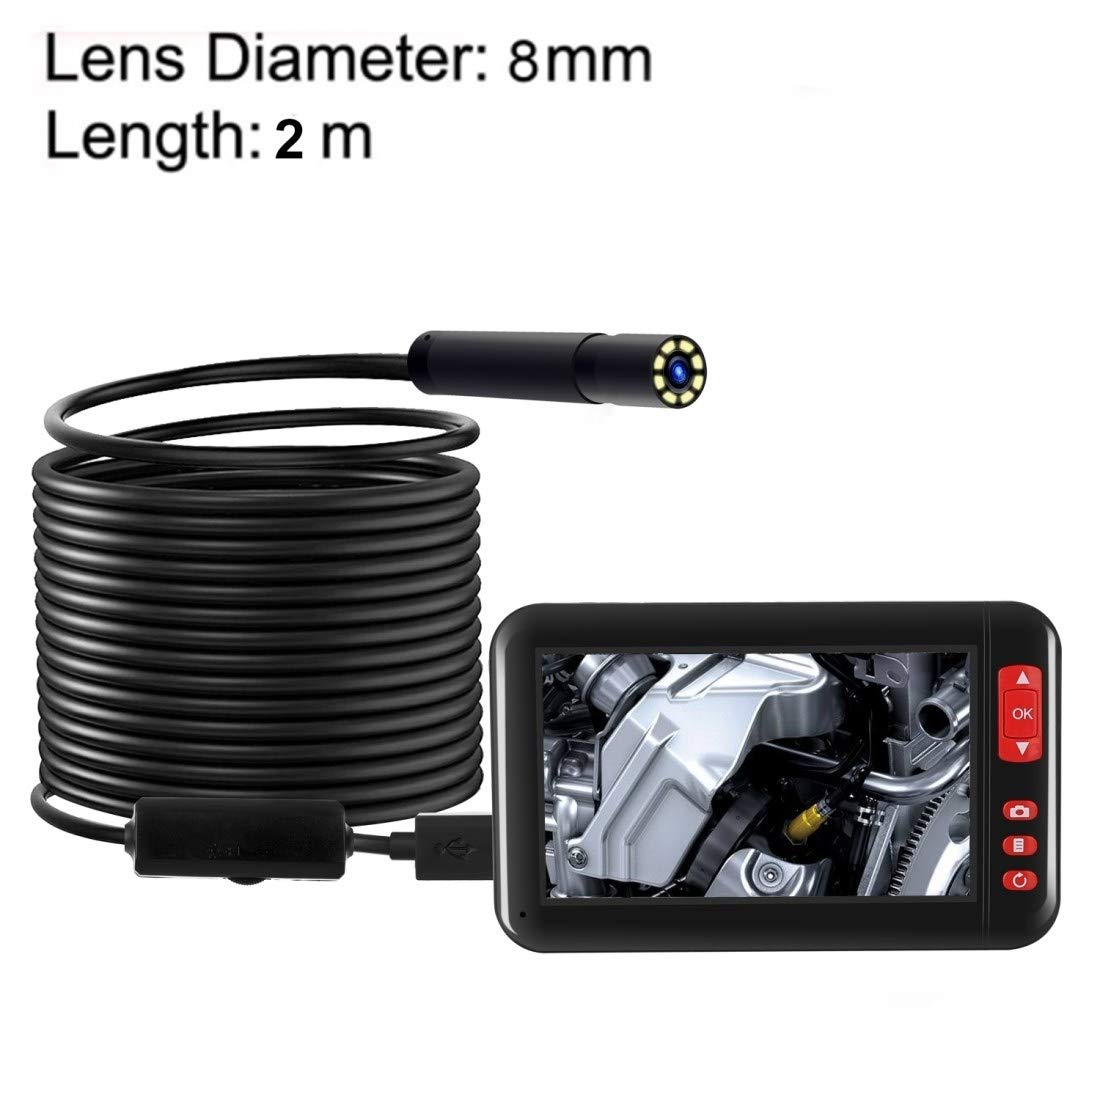 QGT F200 4.3 Inch Screen Display HD1080P Snake Tube Inspection Endoscope with 8 LEDs, Length: 2m, Lens Diameter: 8mm, Mild Line